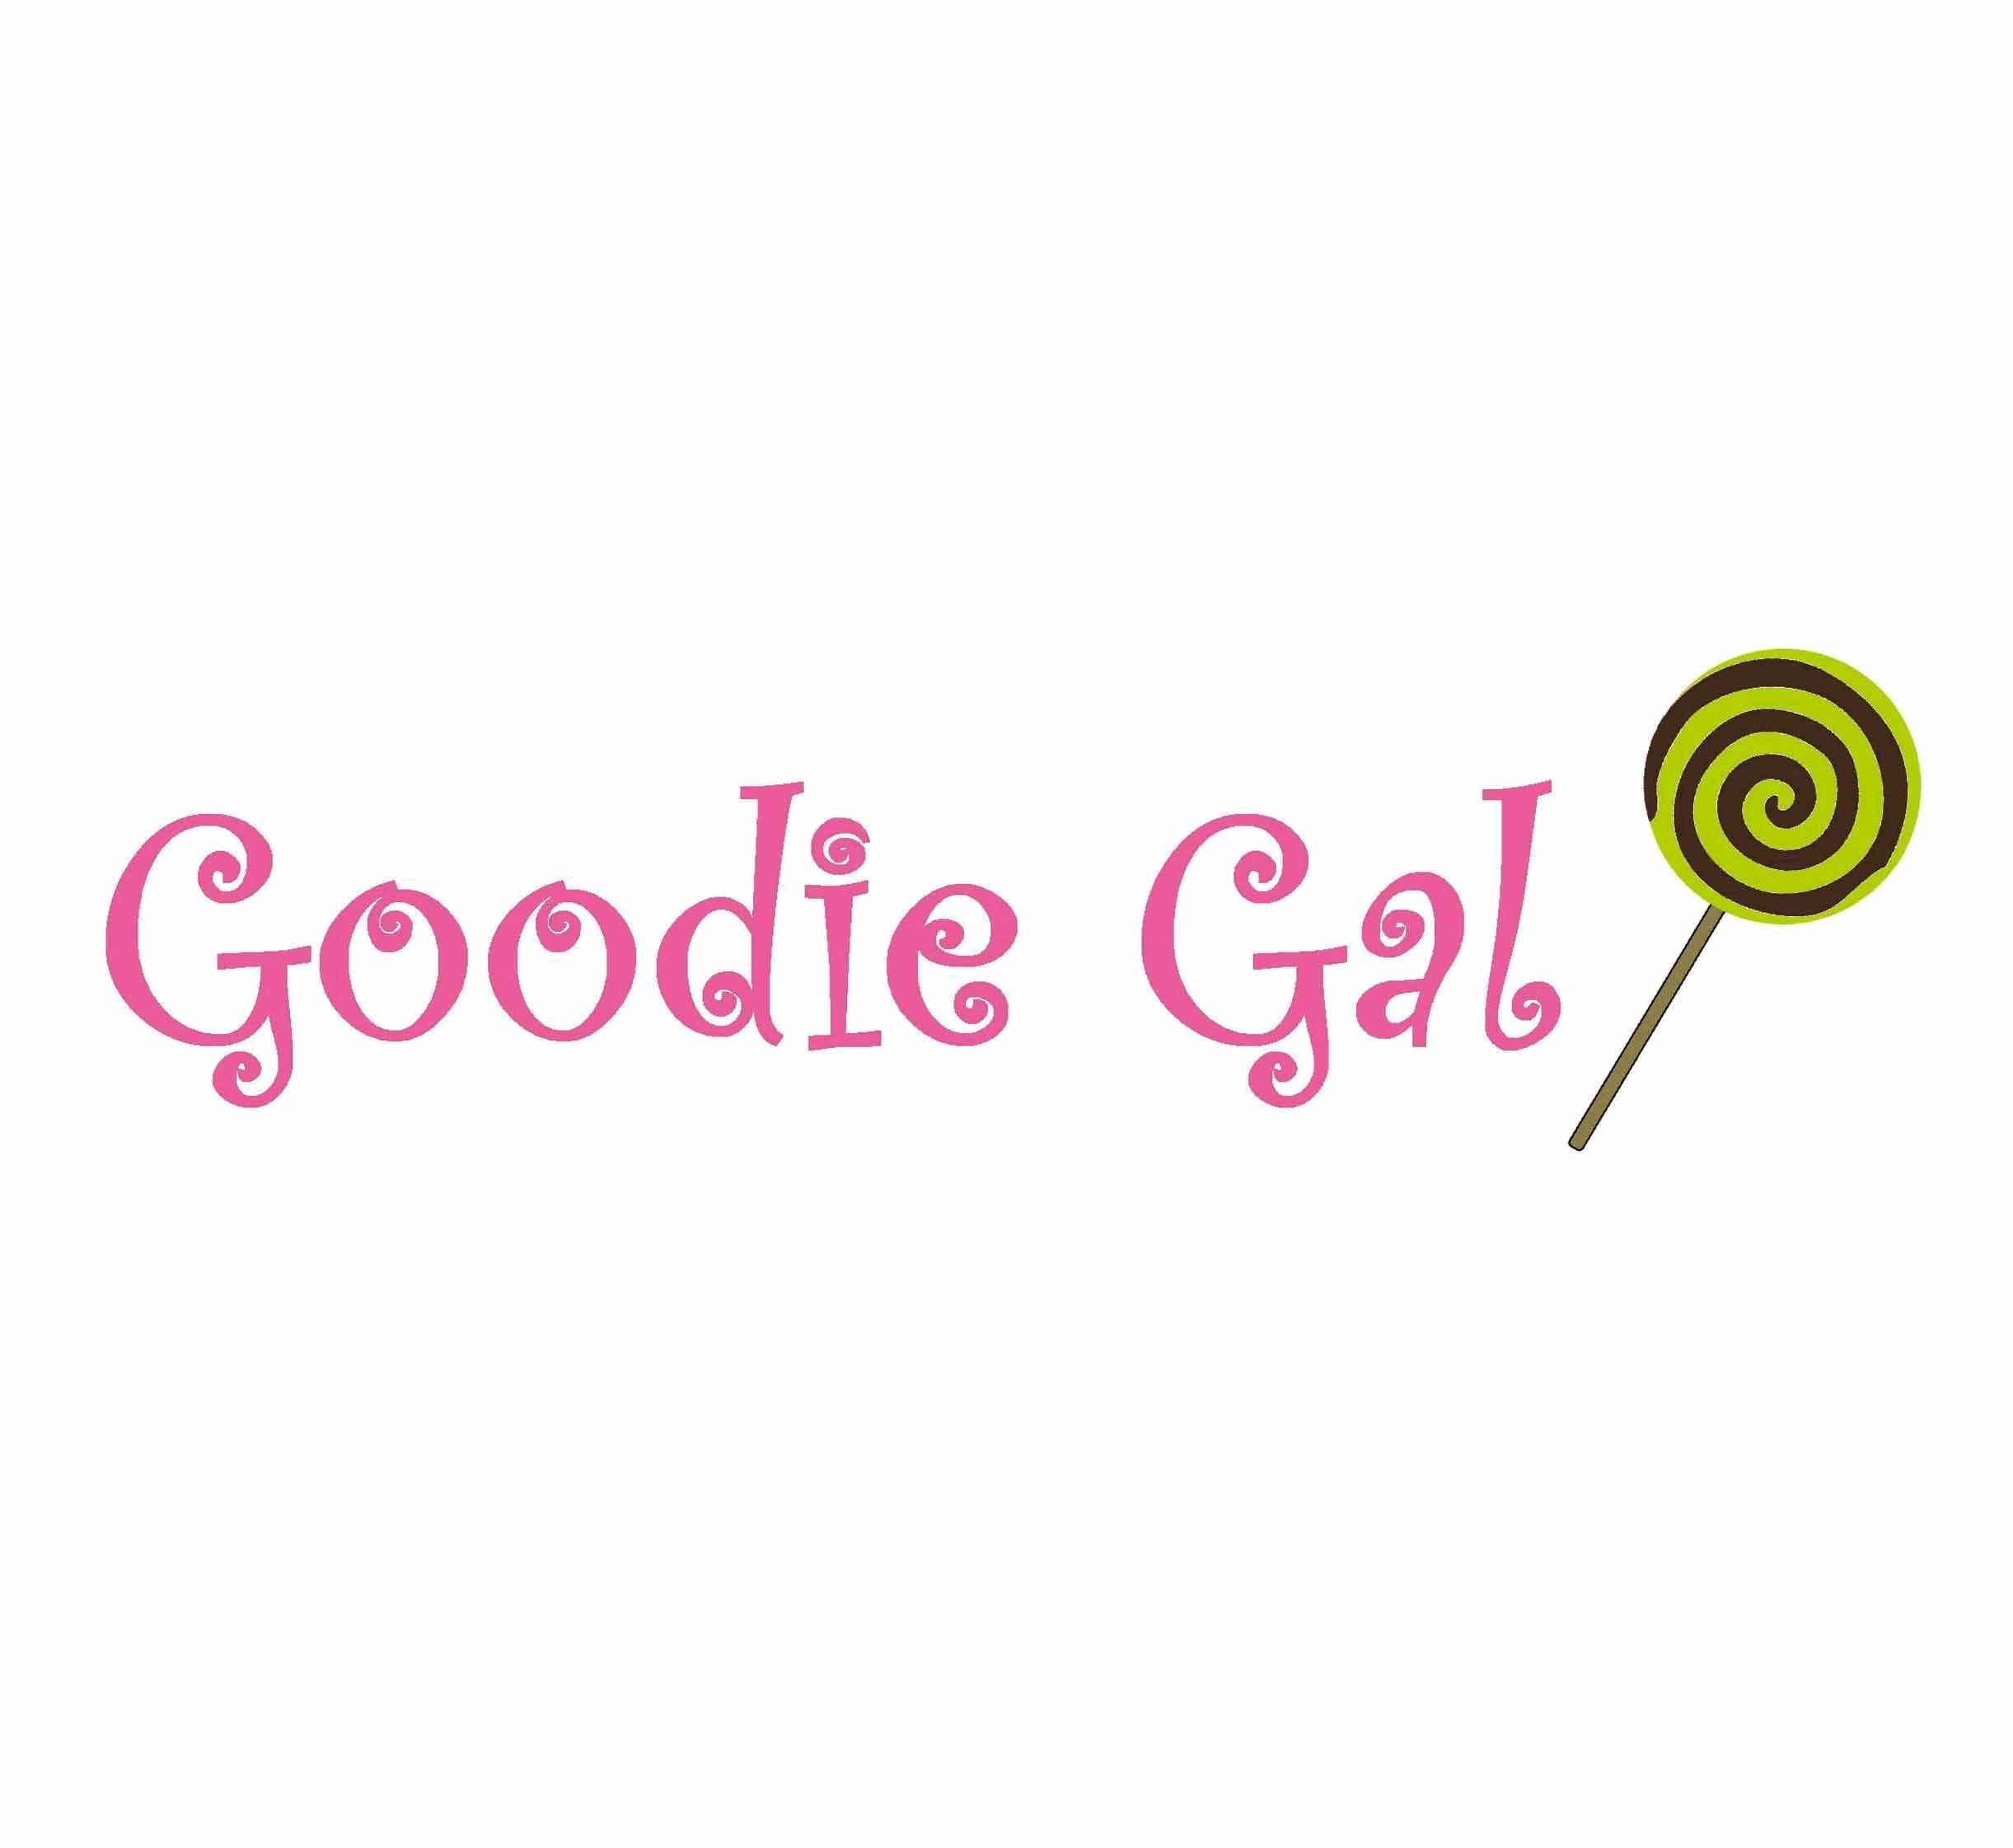 Goodie Gal, logo by New Paradigm graphic design, Santa Rosa, CA